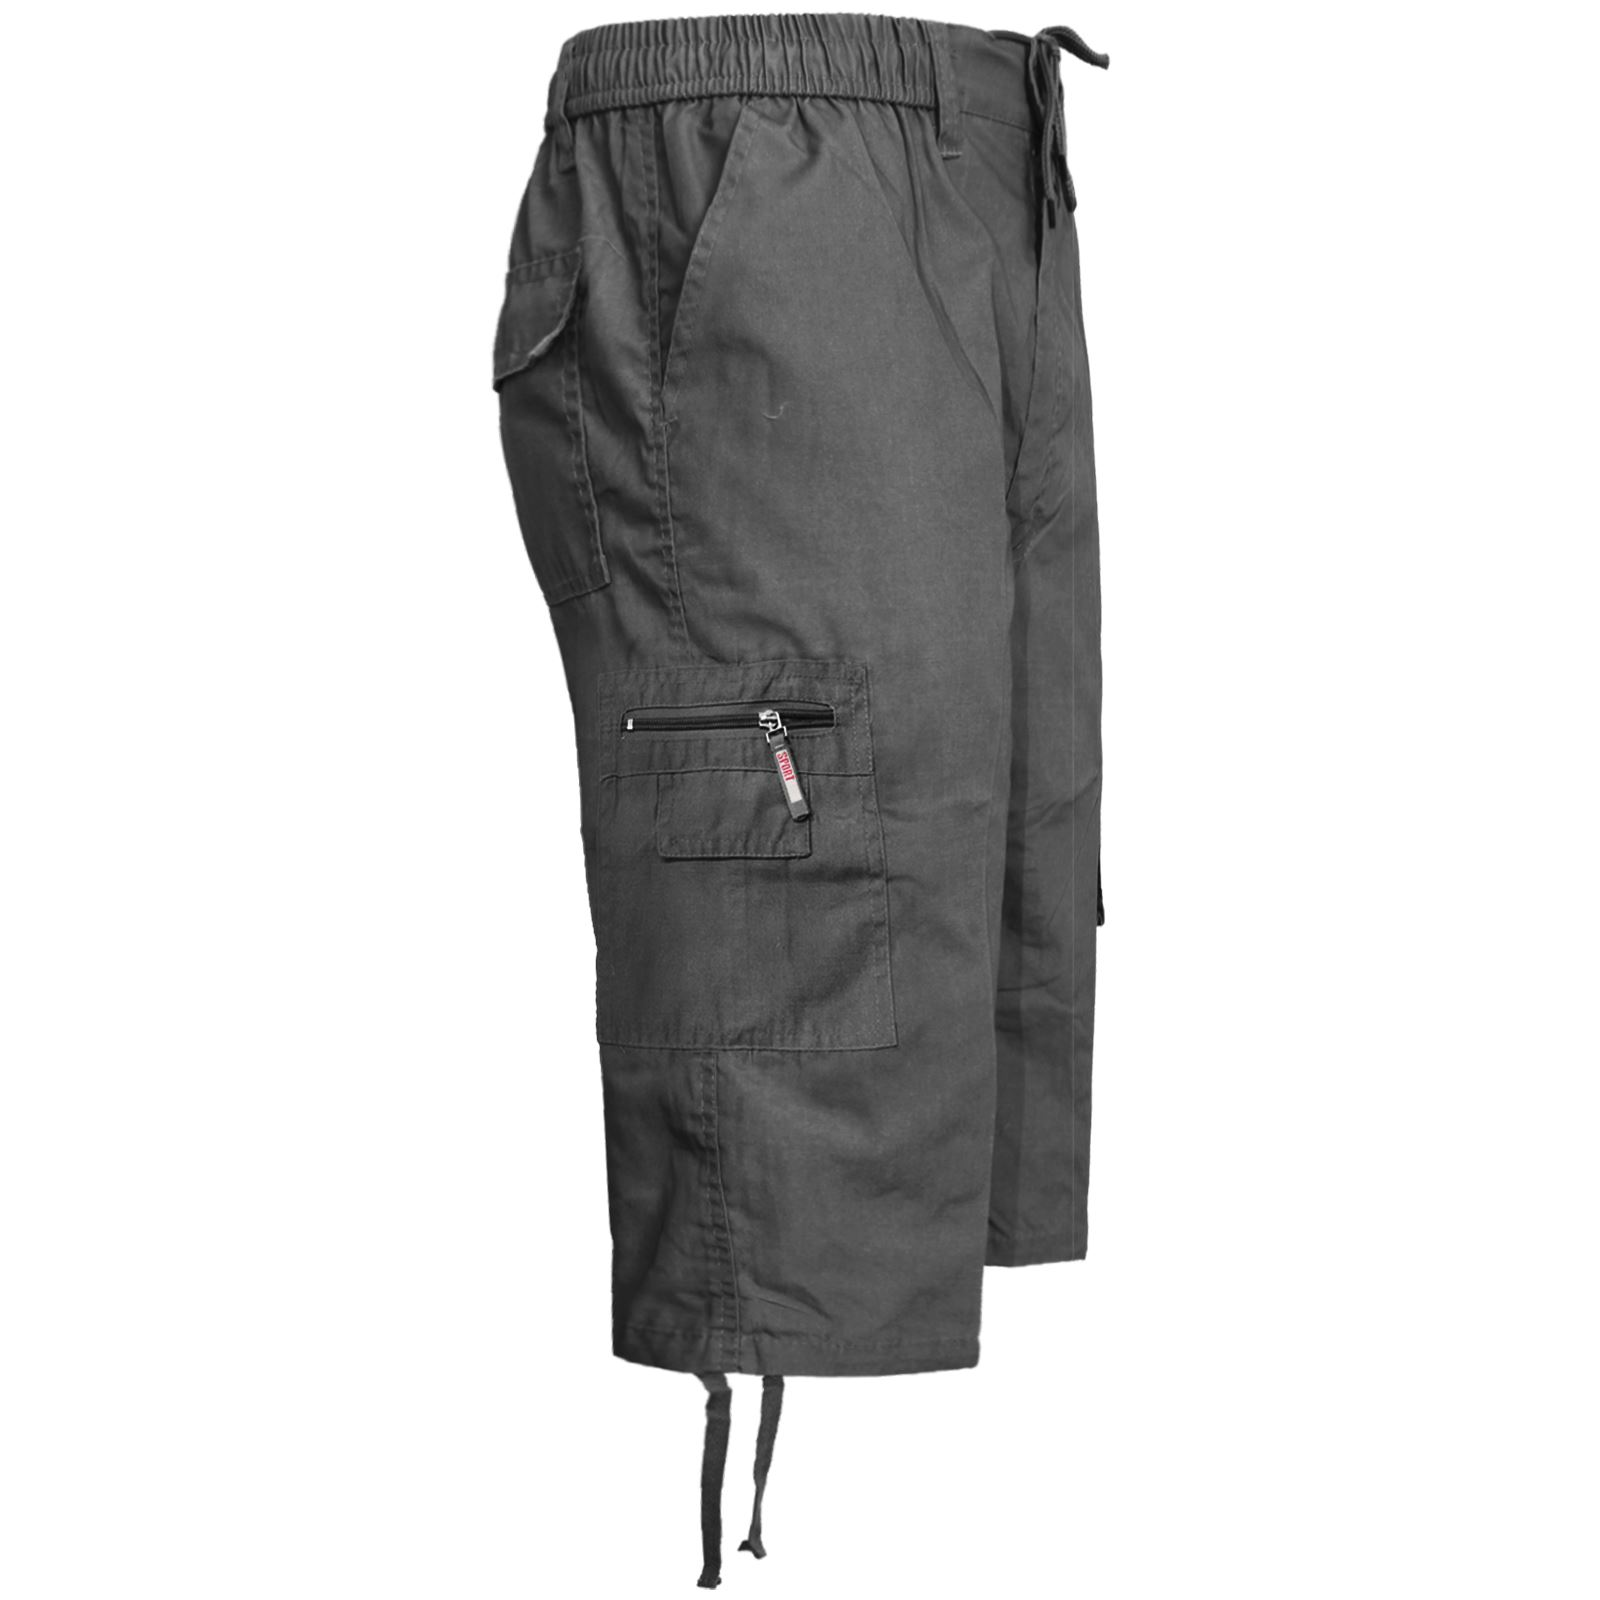 MENS-ELASTICATED-KNEE-LENGTH-OR-3-4-SHORTS-CARGO-COMBAT-MULTI-POCKET-SUMMER-PANT thumbnail 26